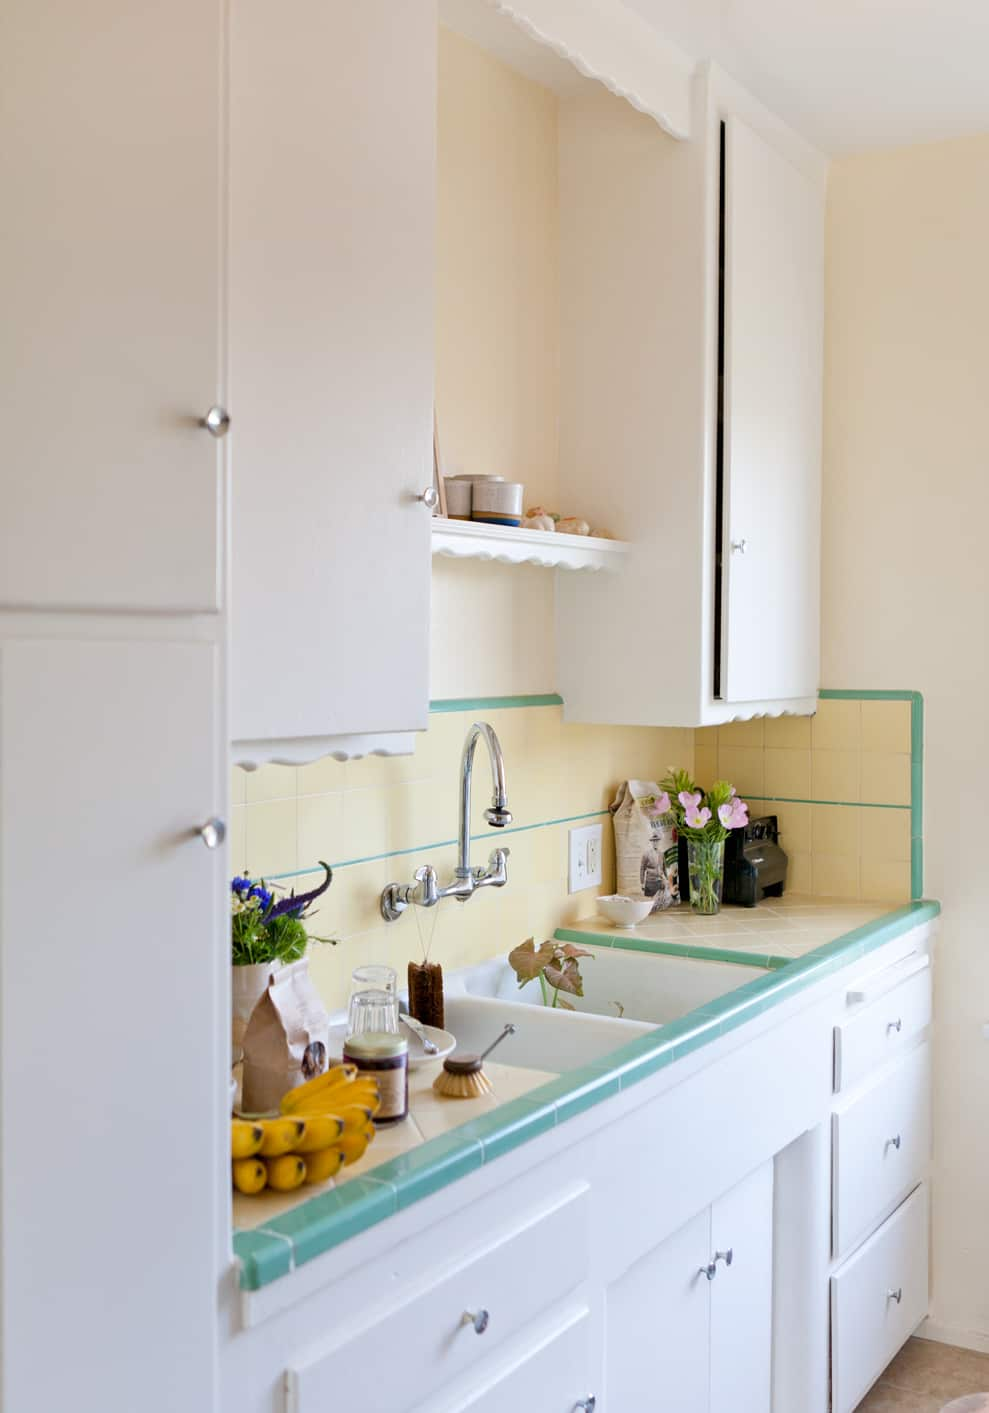 15 Small Space Kitchens, Tips, and Storage Solutions That Inspired Us: gallery image 2